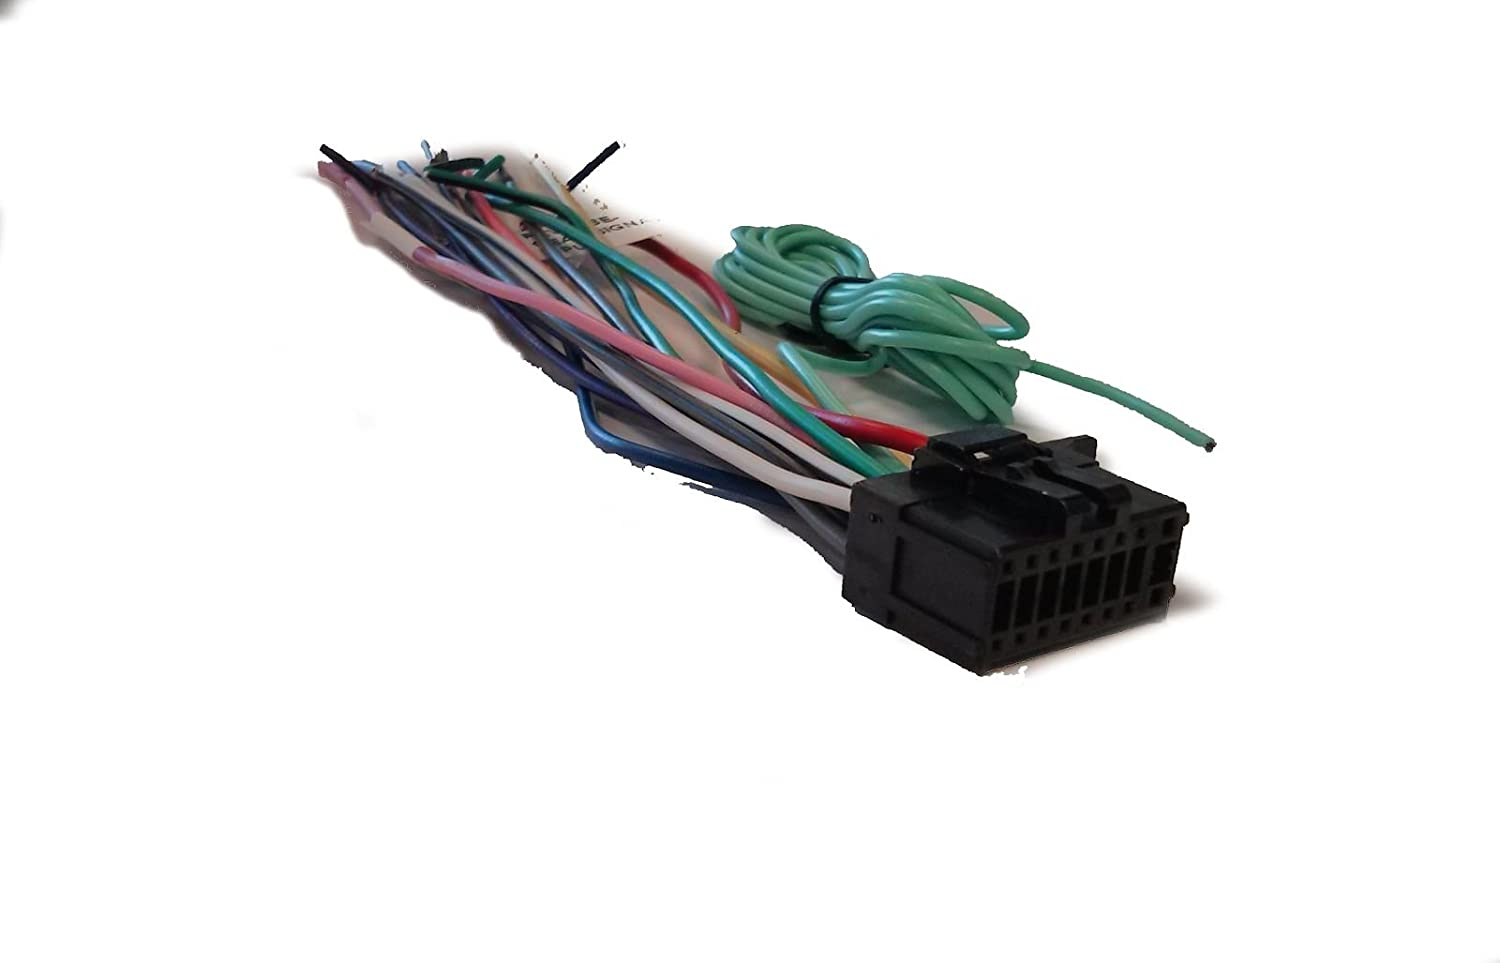 61s%2B2yUu BL._SL1500_ amazon com pioneer wire harness for sph da210 sph da100 sph da200 sph-da100 wiring harness at honlapkeszites.co